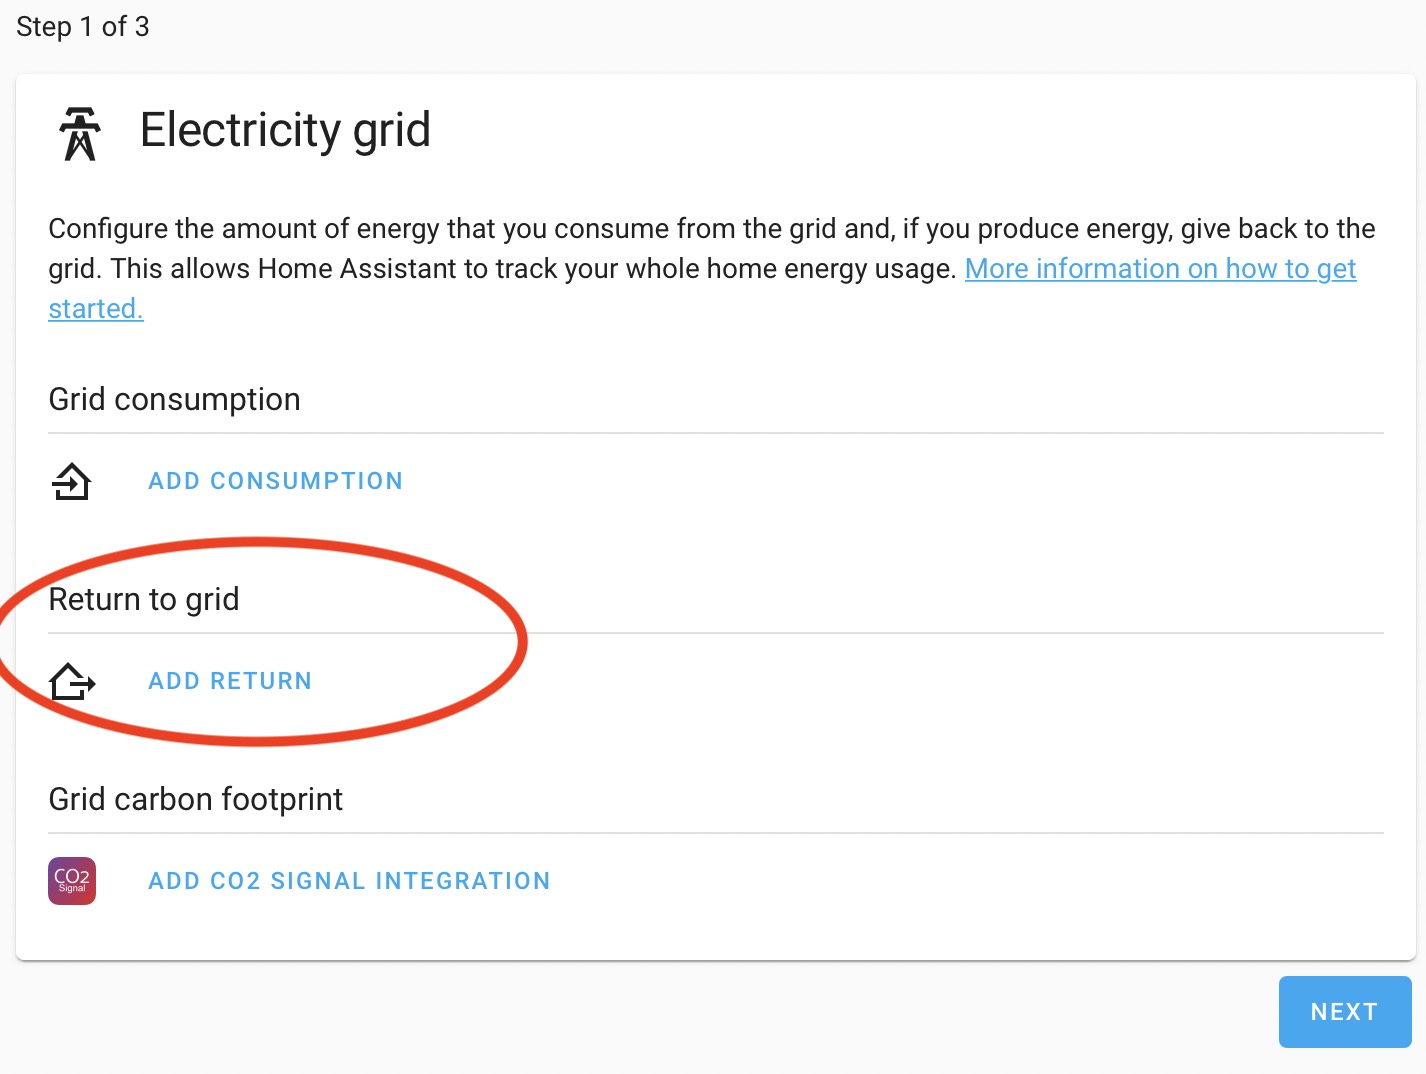 Configuring Return to grid in Home Assistant Energy Management dashboard